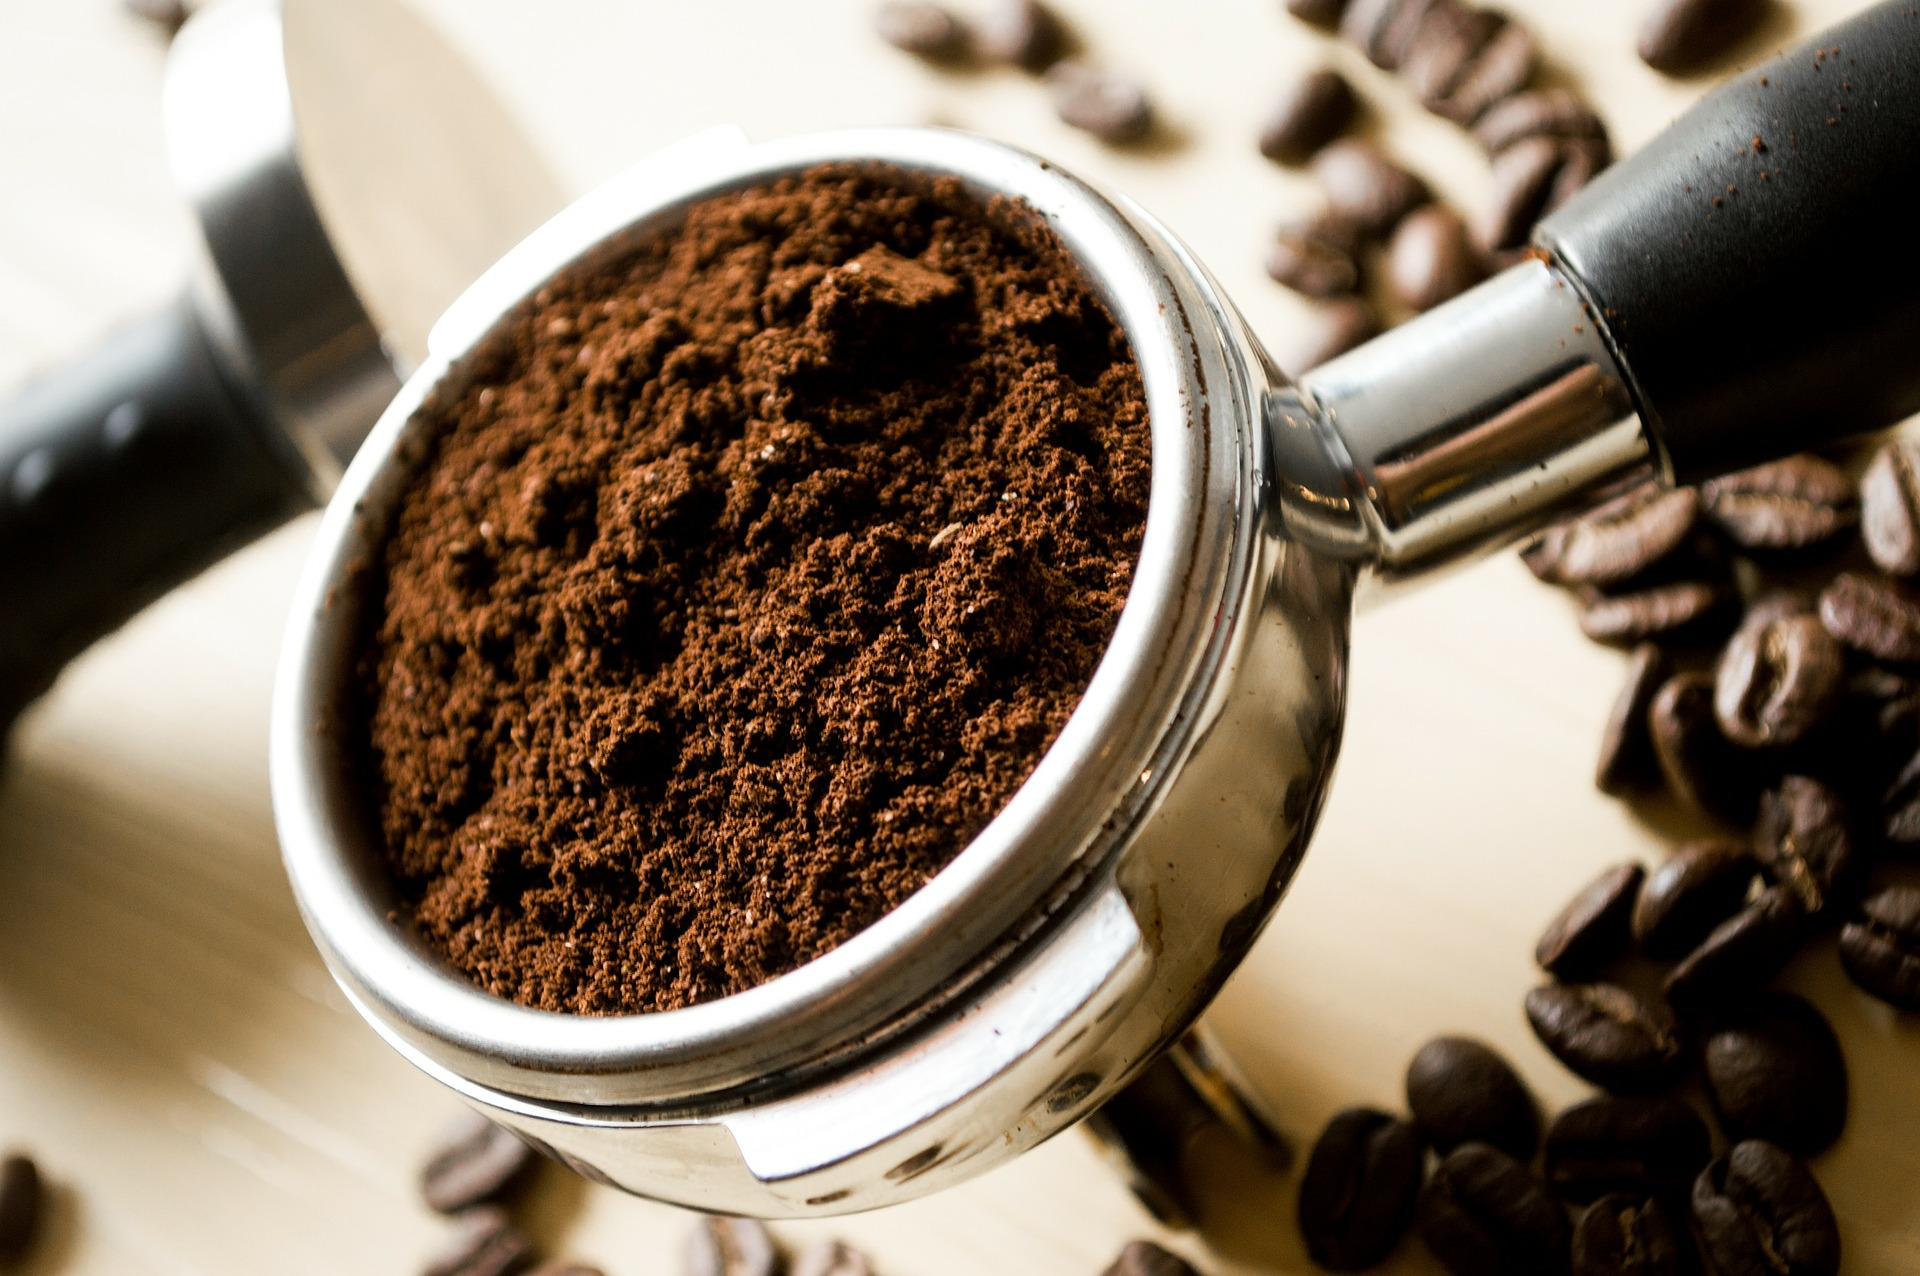 Researchers have often looked into the pros and cons of drinking coffee